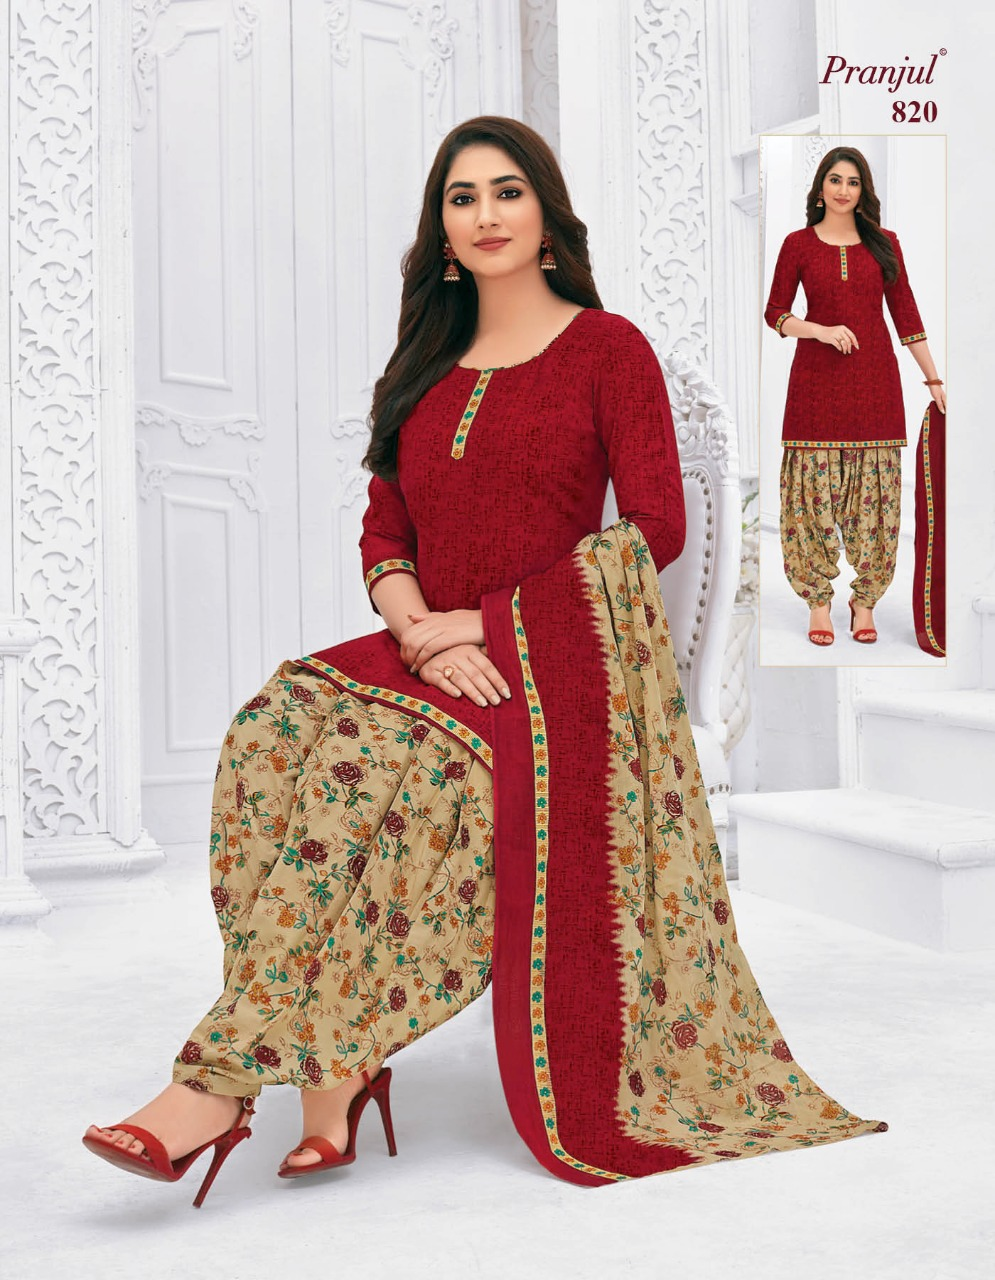 Pranjul Priyanka Vol 8 A Readymade Suit Wholesale Catalog 15 Pcs 9 - Pranjul Priyanka Vol 8 A Readymade Suit Wholesale Catalog 15 Pcs